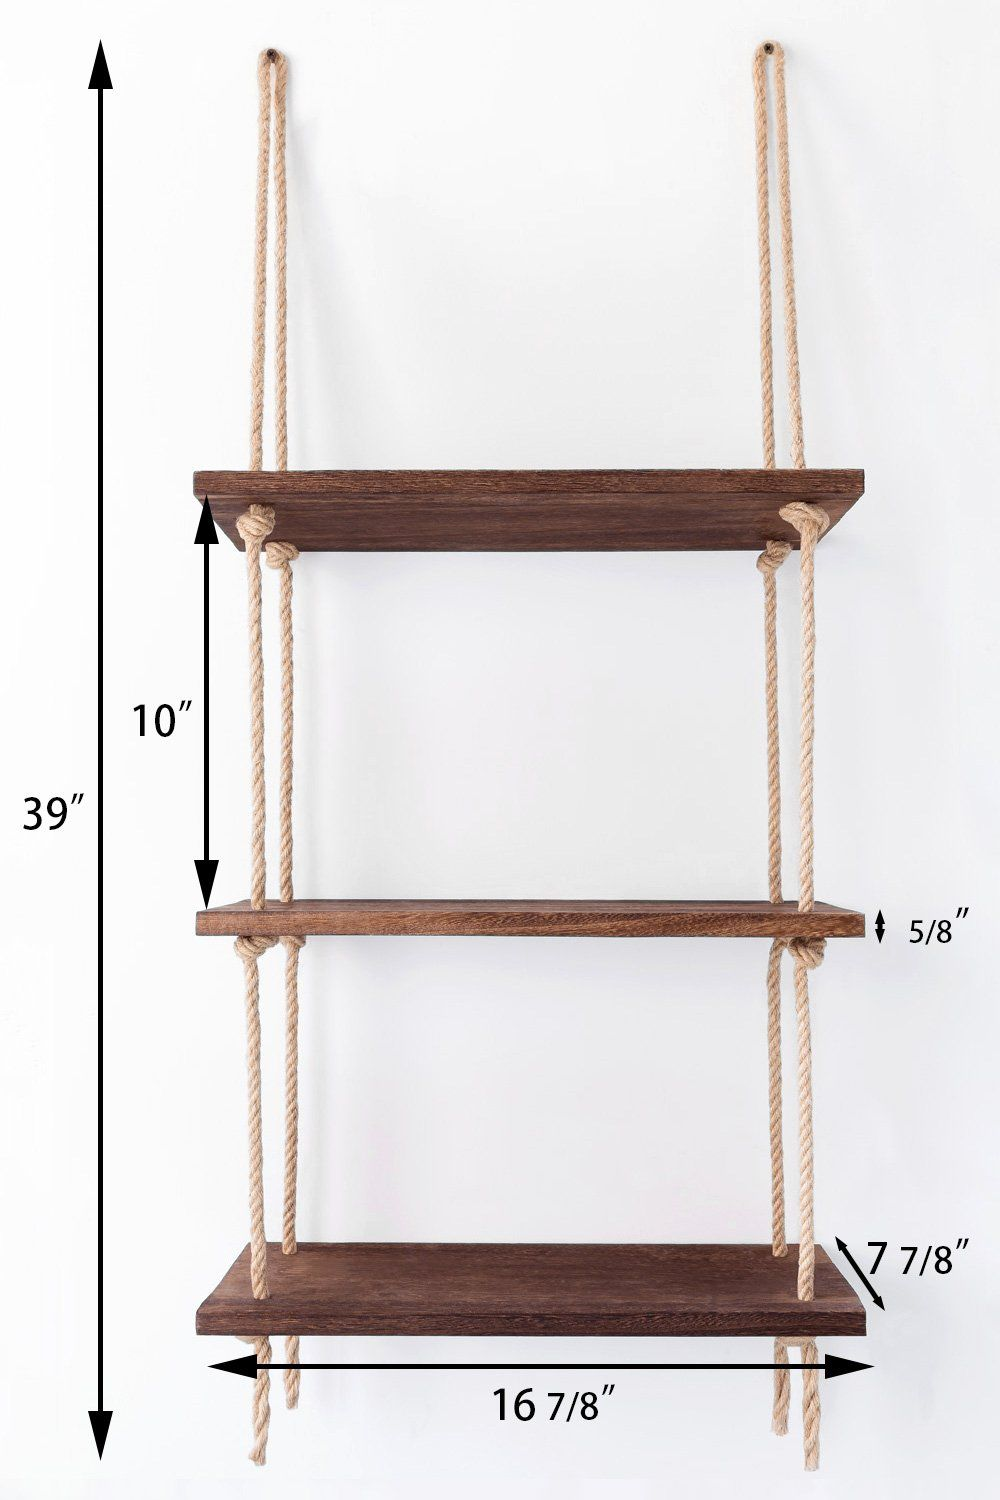 Mkono Wall Hanging Shelves Wood Window Rope Shelf Rustic Storage Rack Home Decor Plants Photos Decorations Display For Living Room Bathroom Bedroom Kitchen Apar Diy Hanging Shelves Wall Hanging Shelves Diy